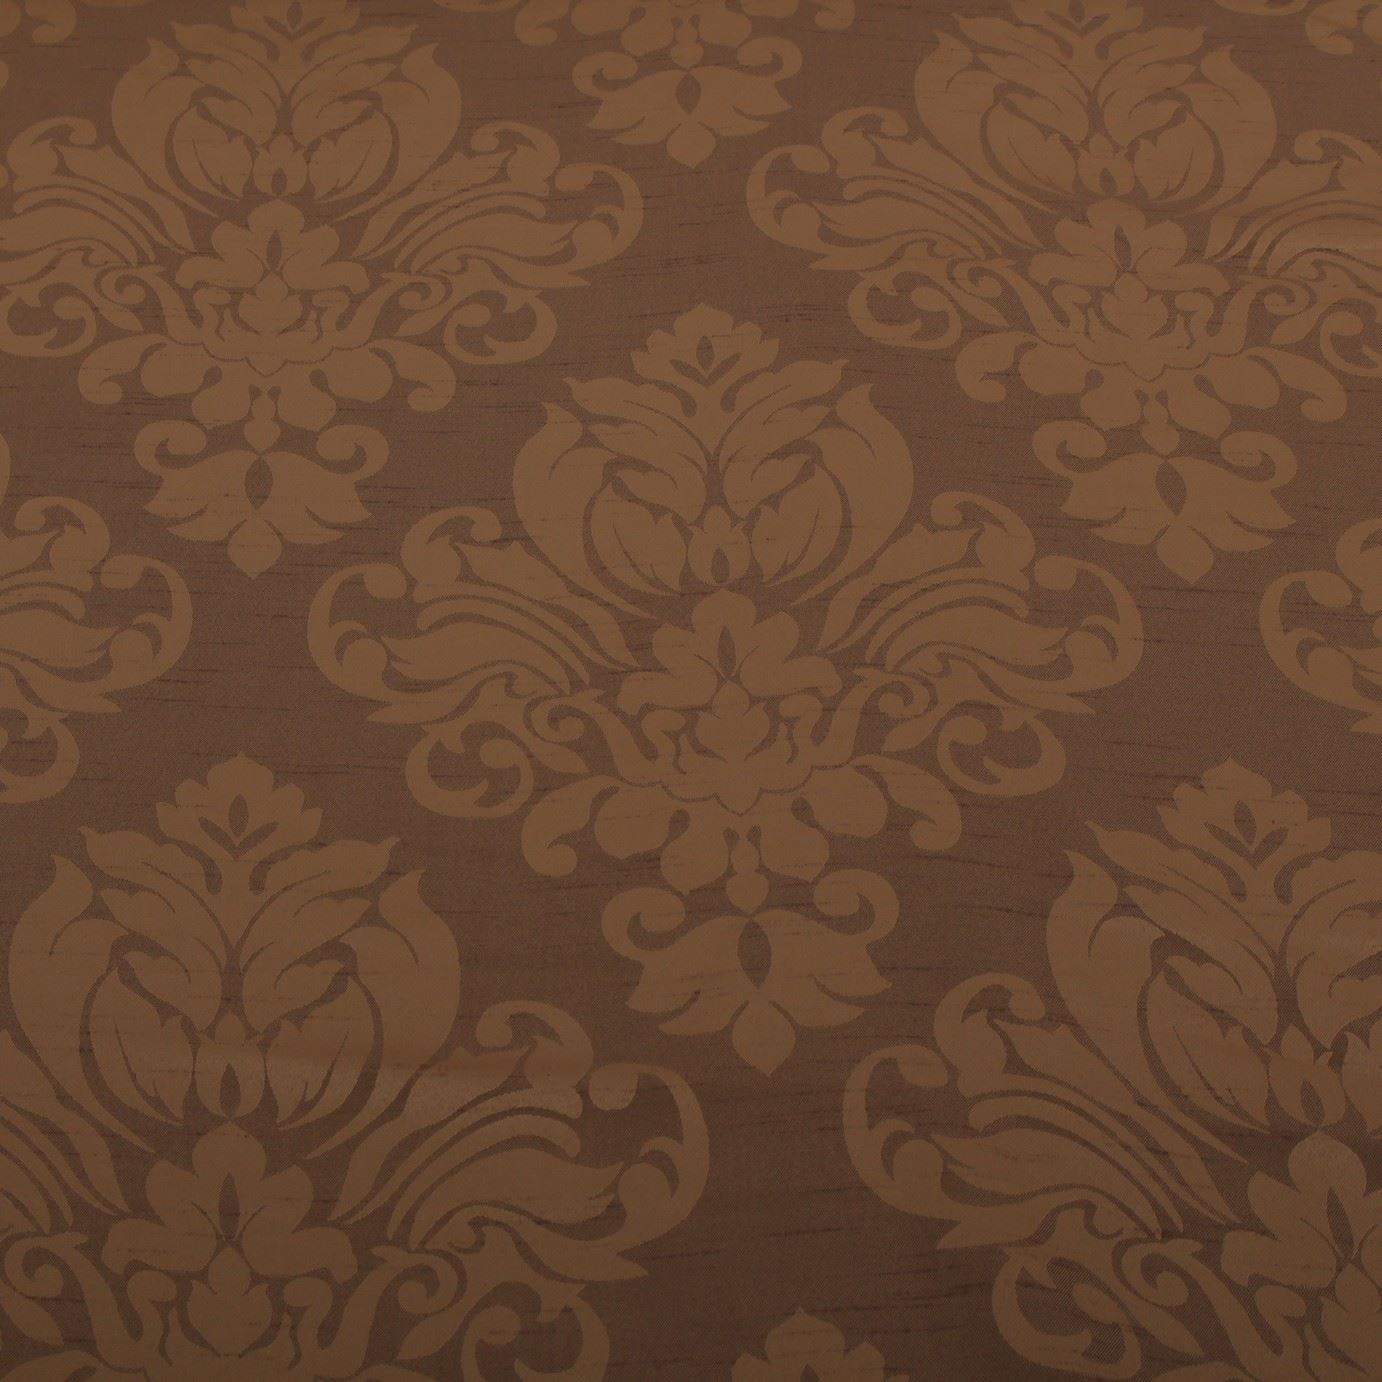 FLORAL-DAMASK-FAUX-SILK-JACQUARD-CURTAIN-UPHOLSTERY-FABRIC-MATERIAL-12-COLOURS thumbnail 23